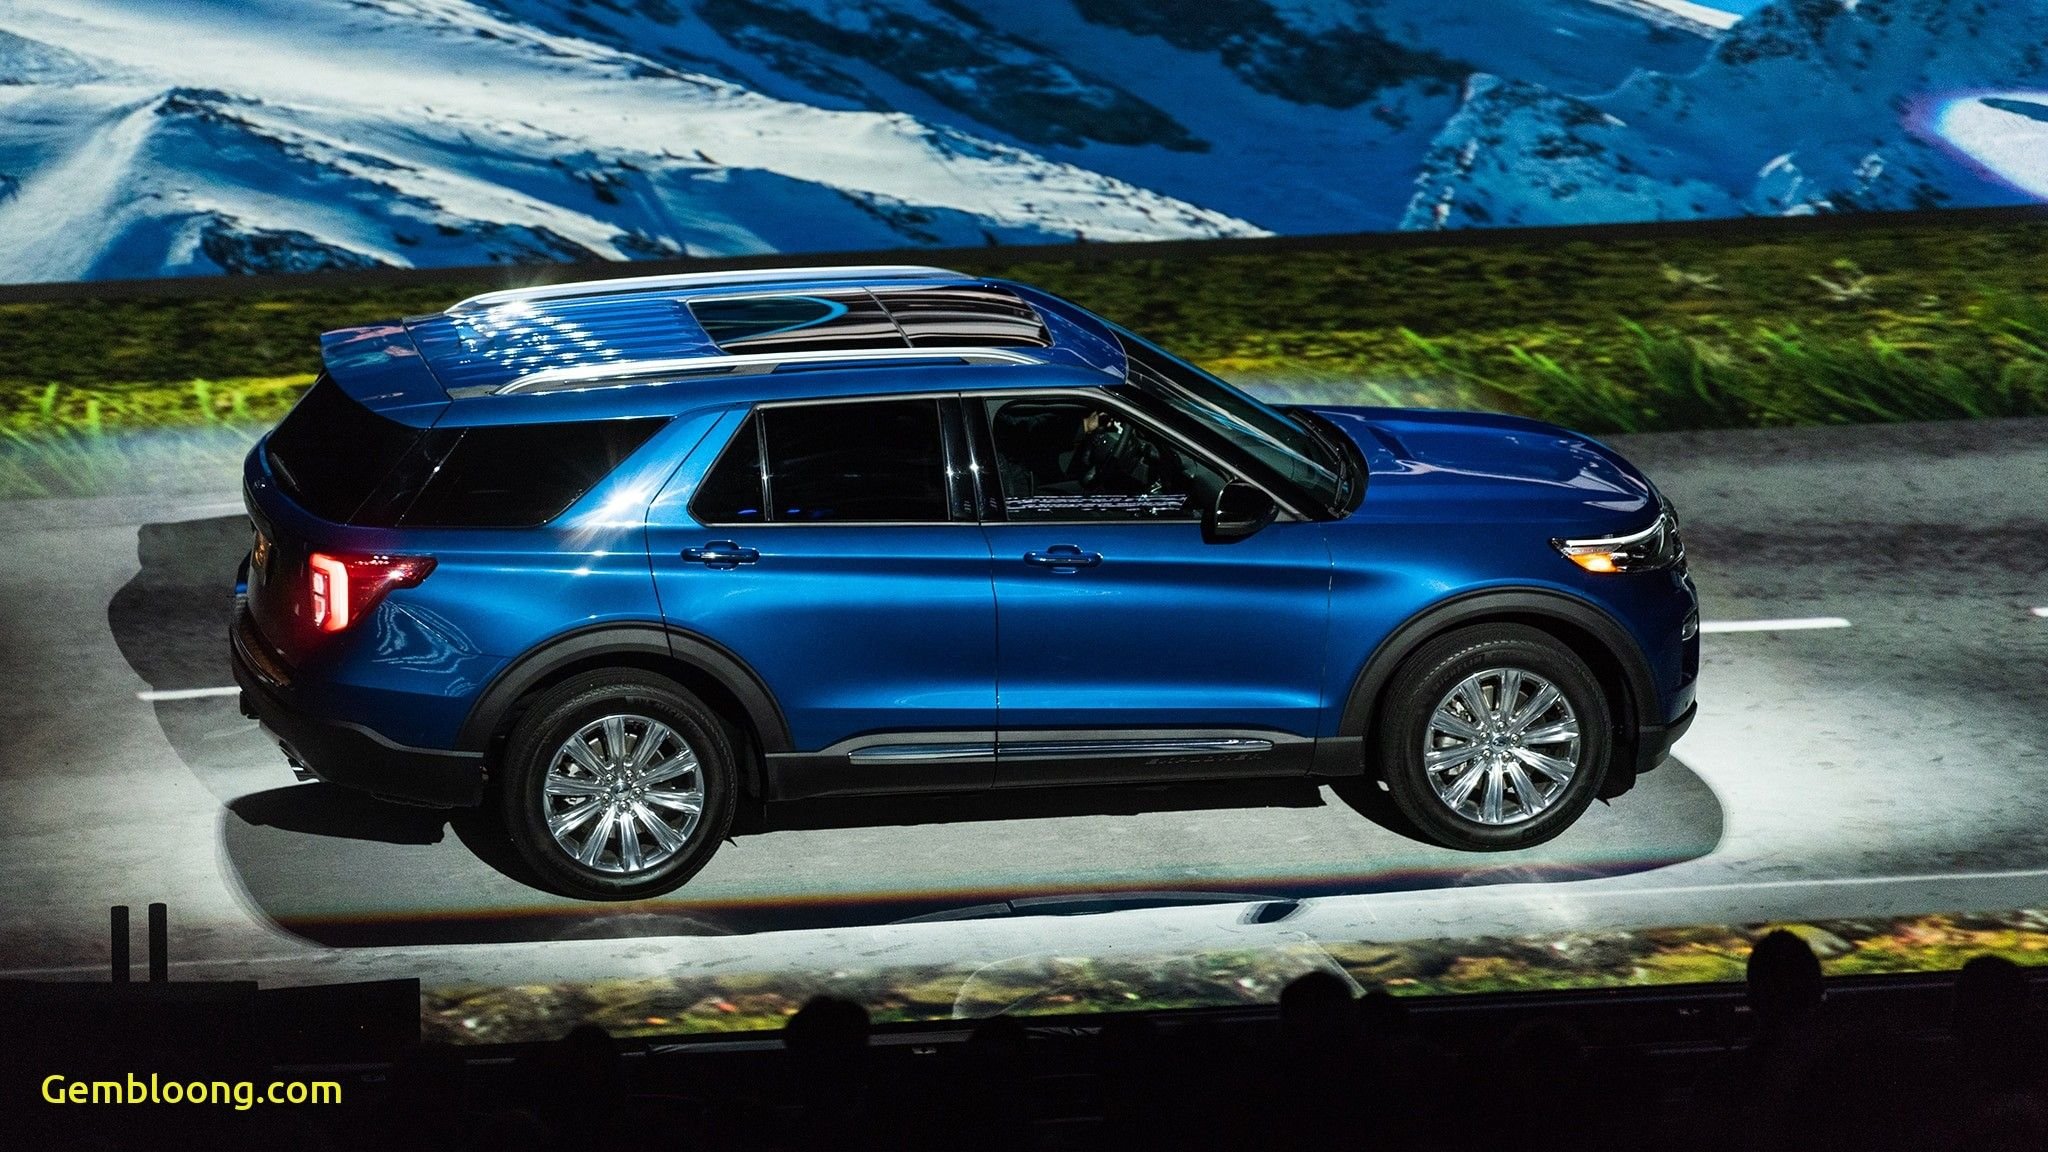 Luxury 2020 ford Explorer, 2020 ford Explorer Awesome 2020